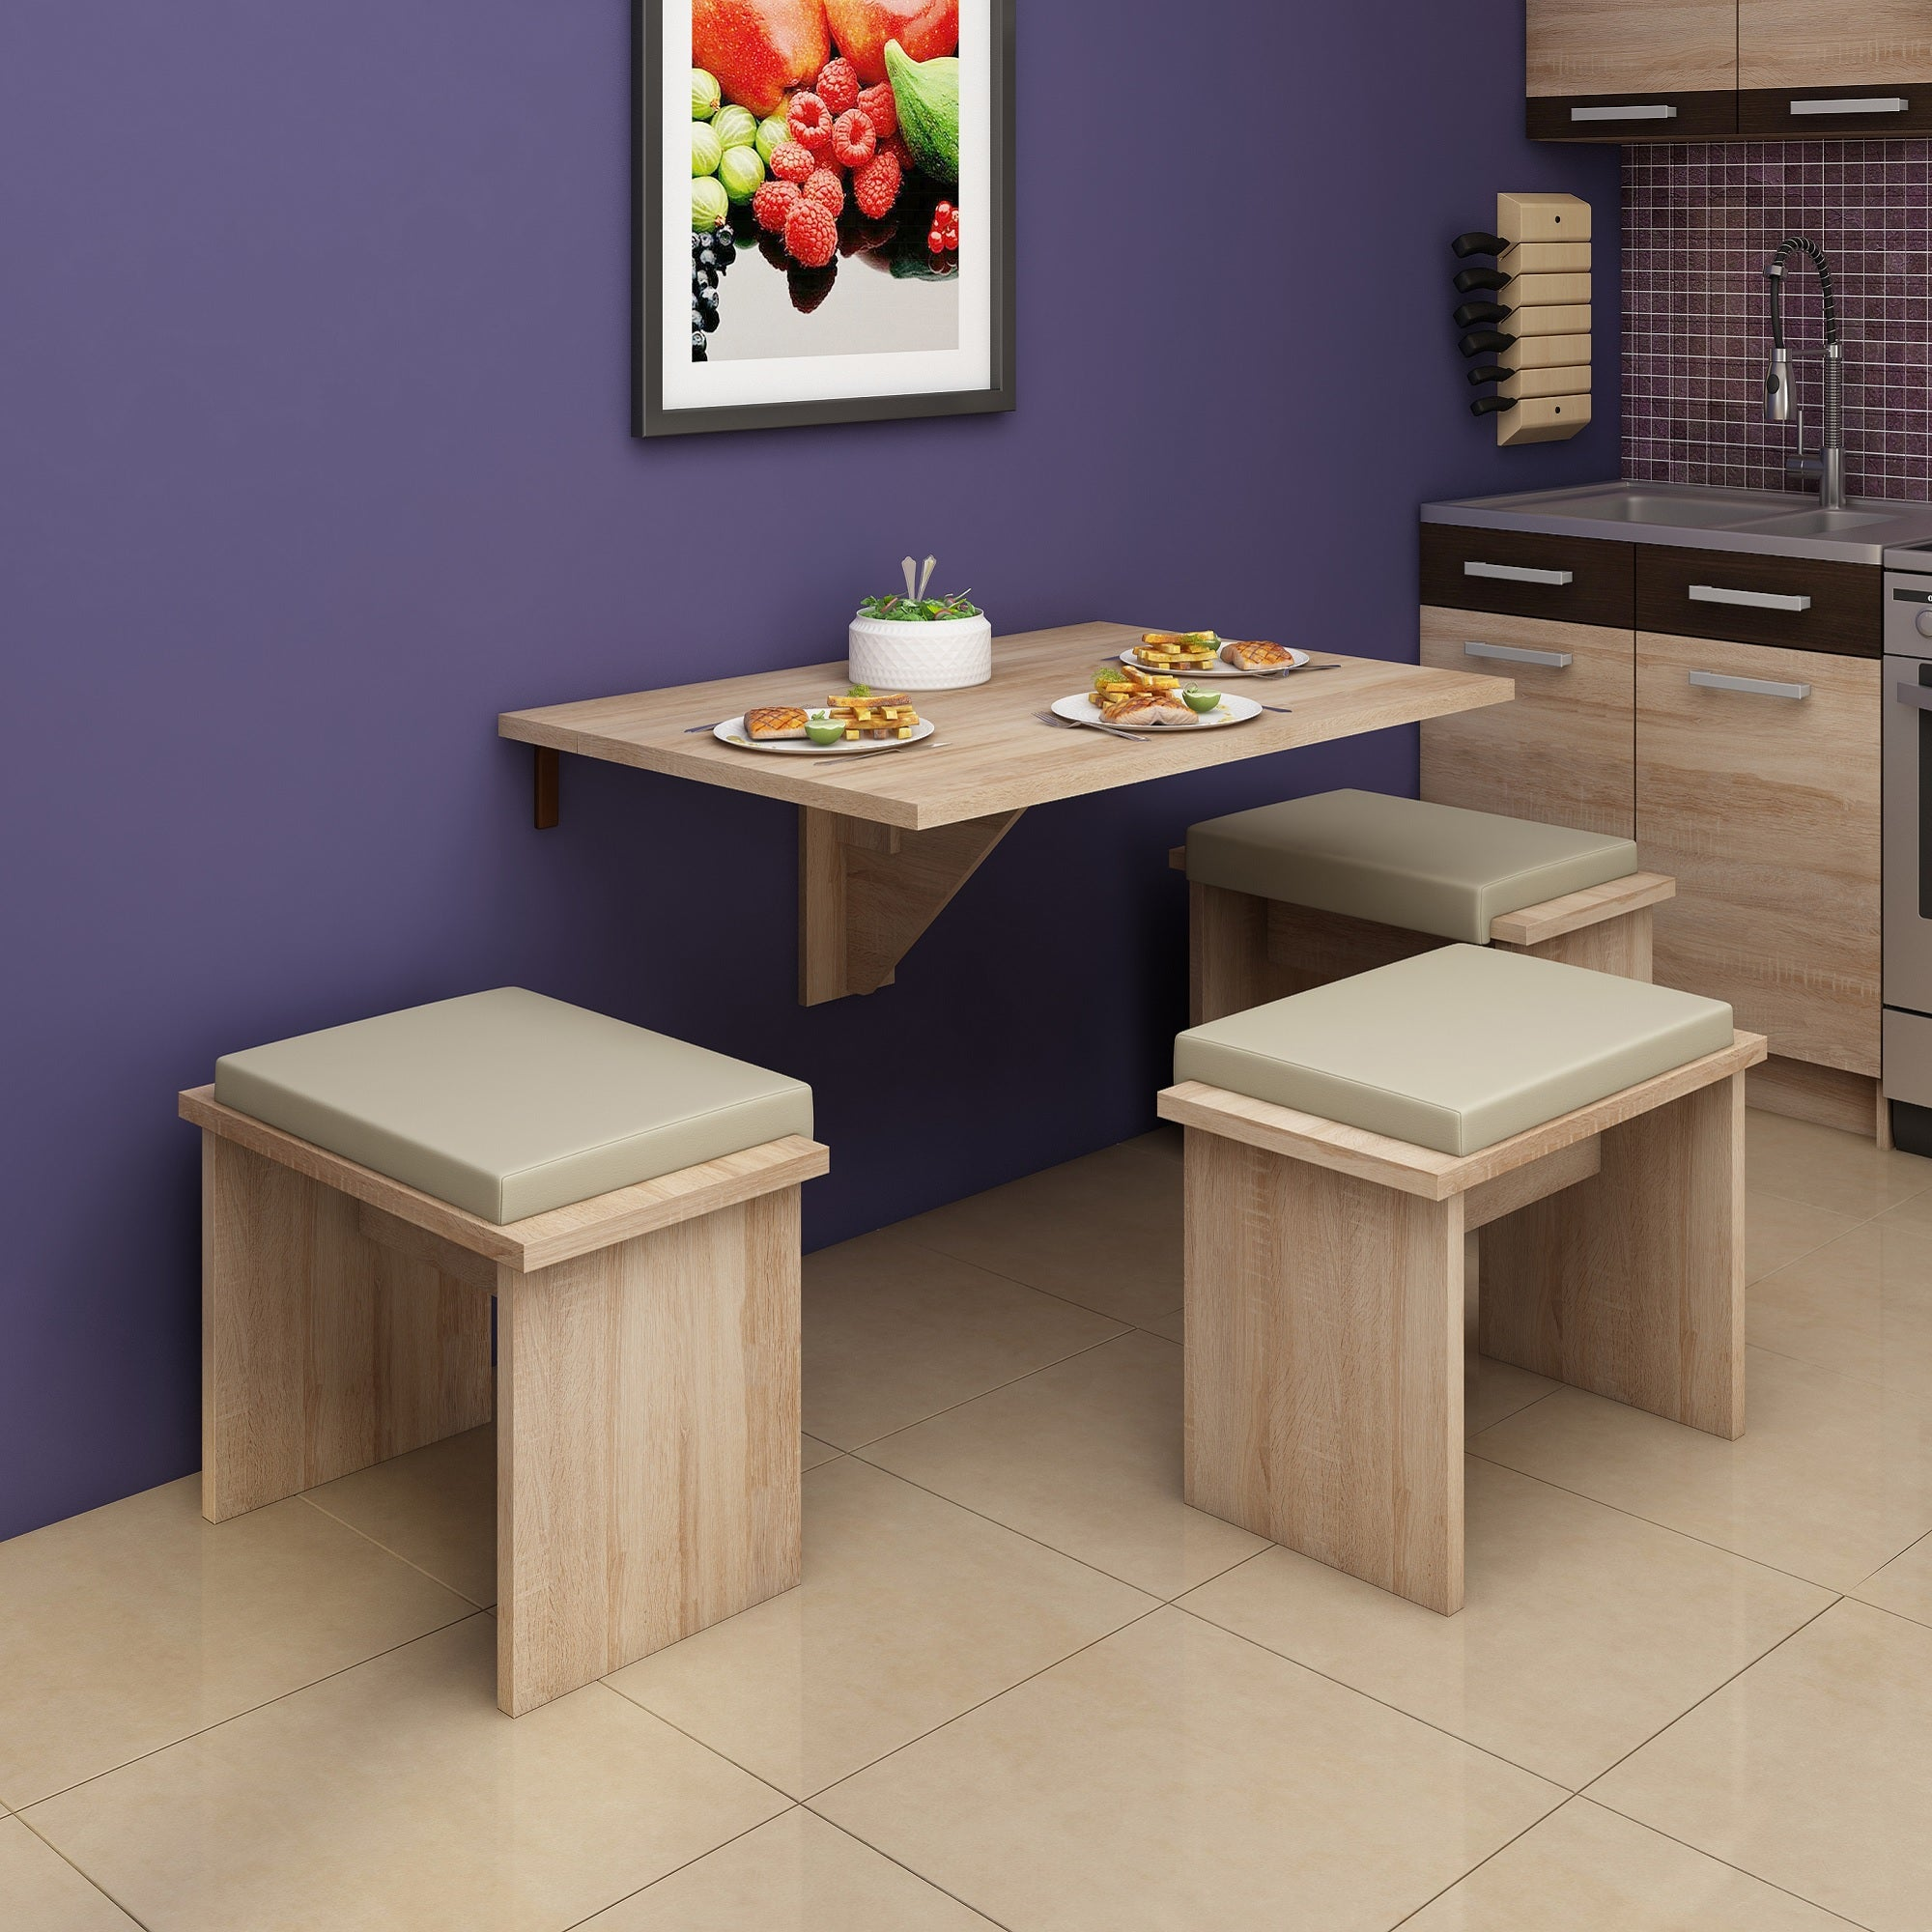 - Expert D Wall-Mounted Drop Leaf Dining Table Furniture.Agency